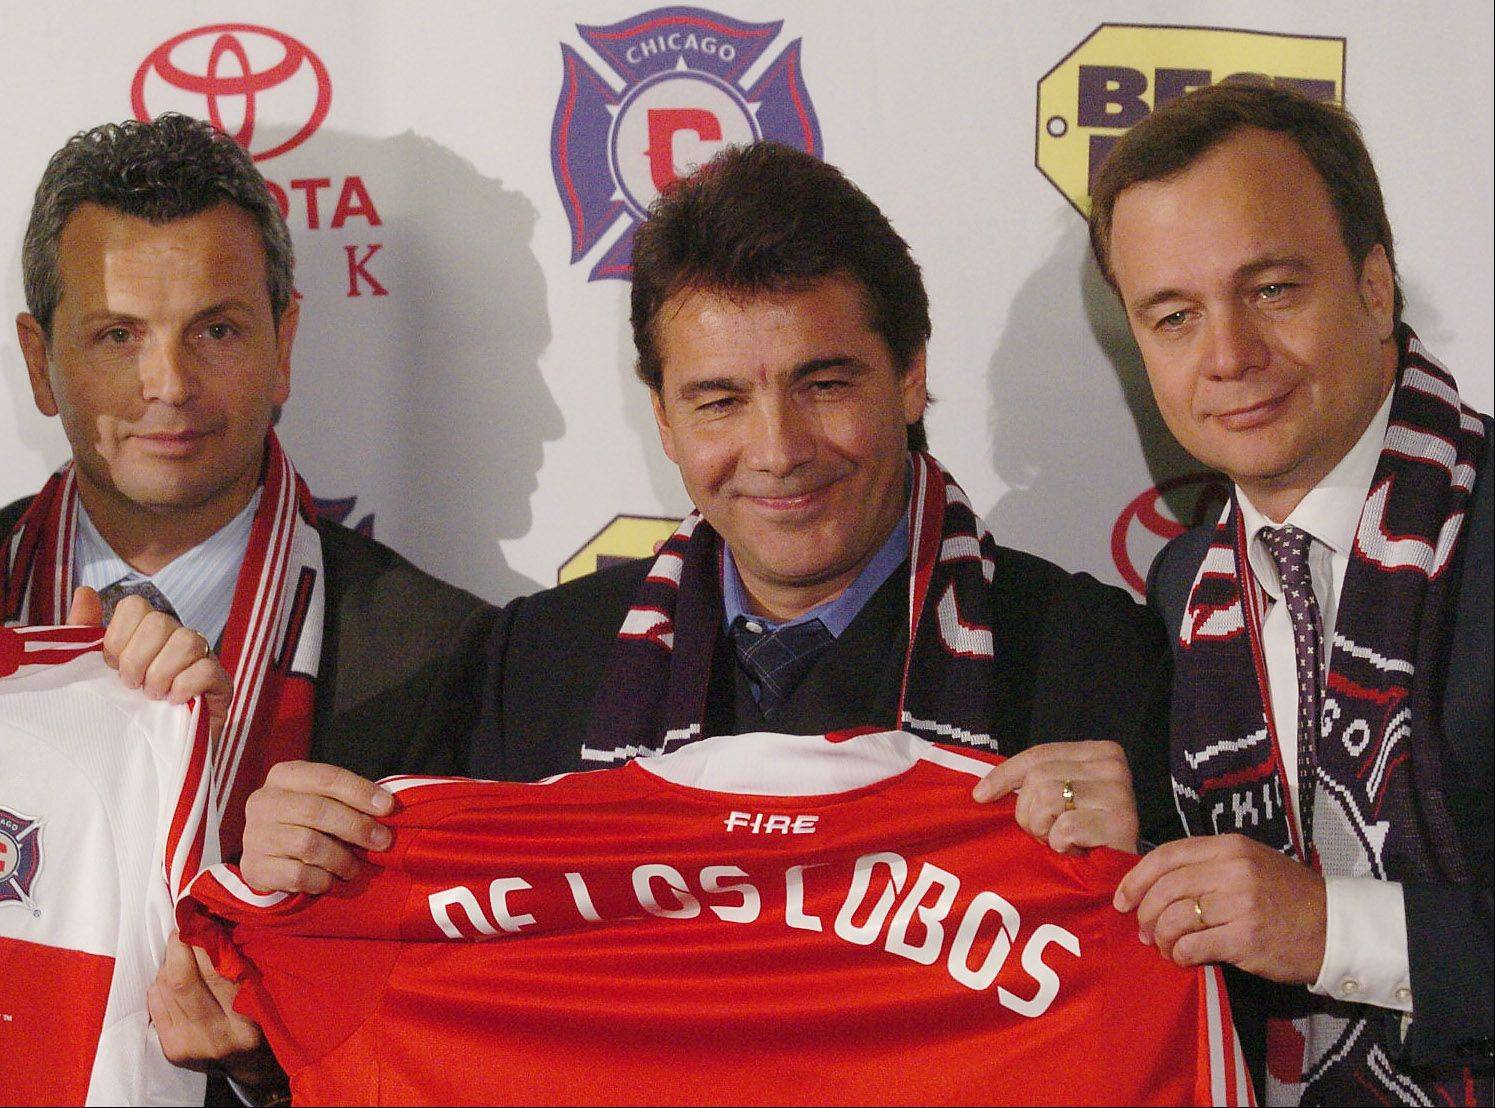 Bob Chwedyk/bchwedyk@dailyherald.com � From left, Technical Director Frank Klopas, new Chicago Fire coach Carlos de los Cobos and Managing Director Javier Leon hold up the coach's new jersey during news conference at Toyota Park.